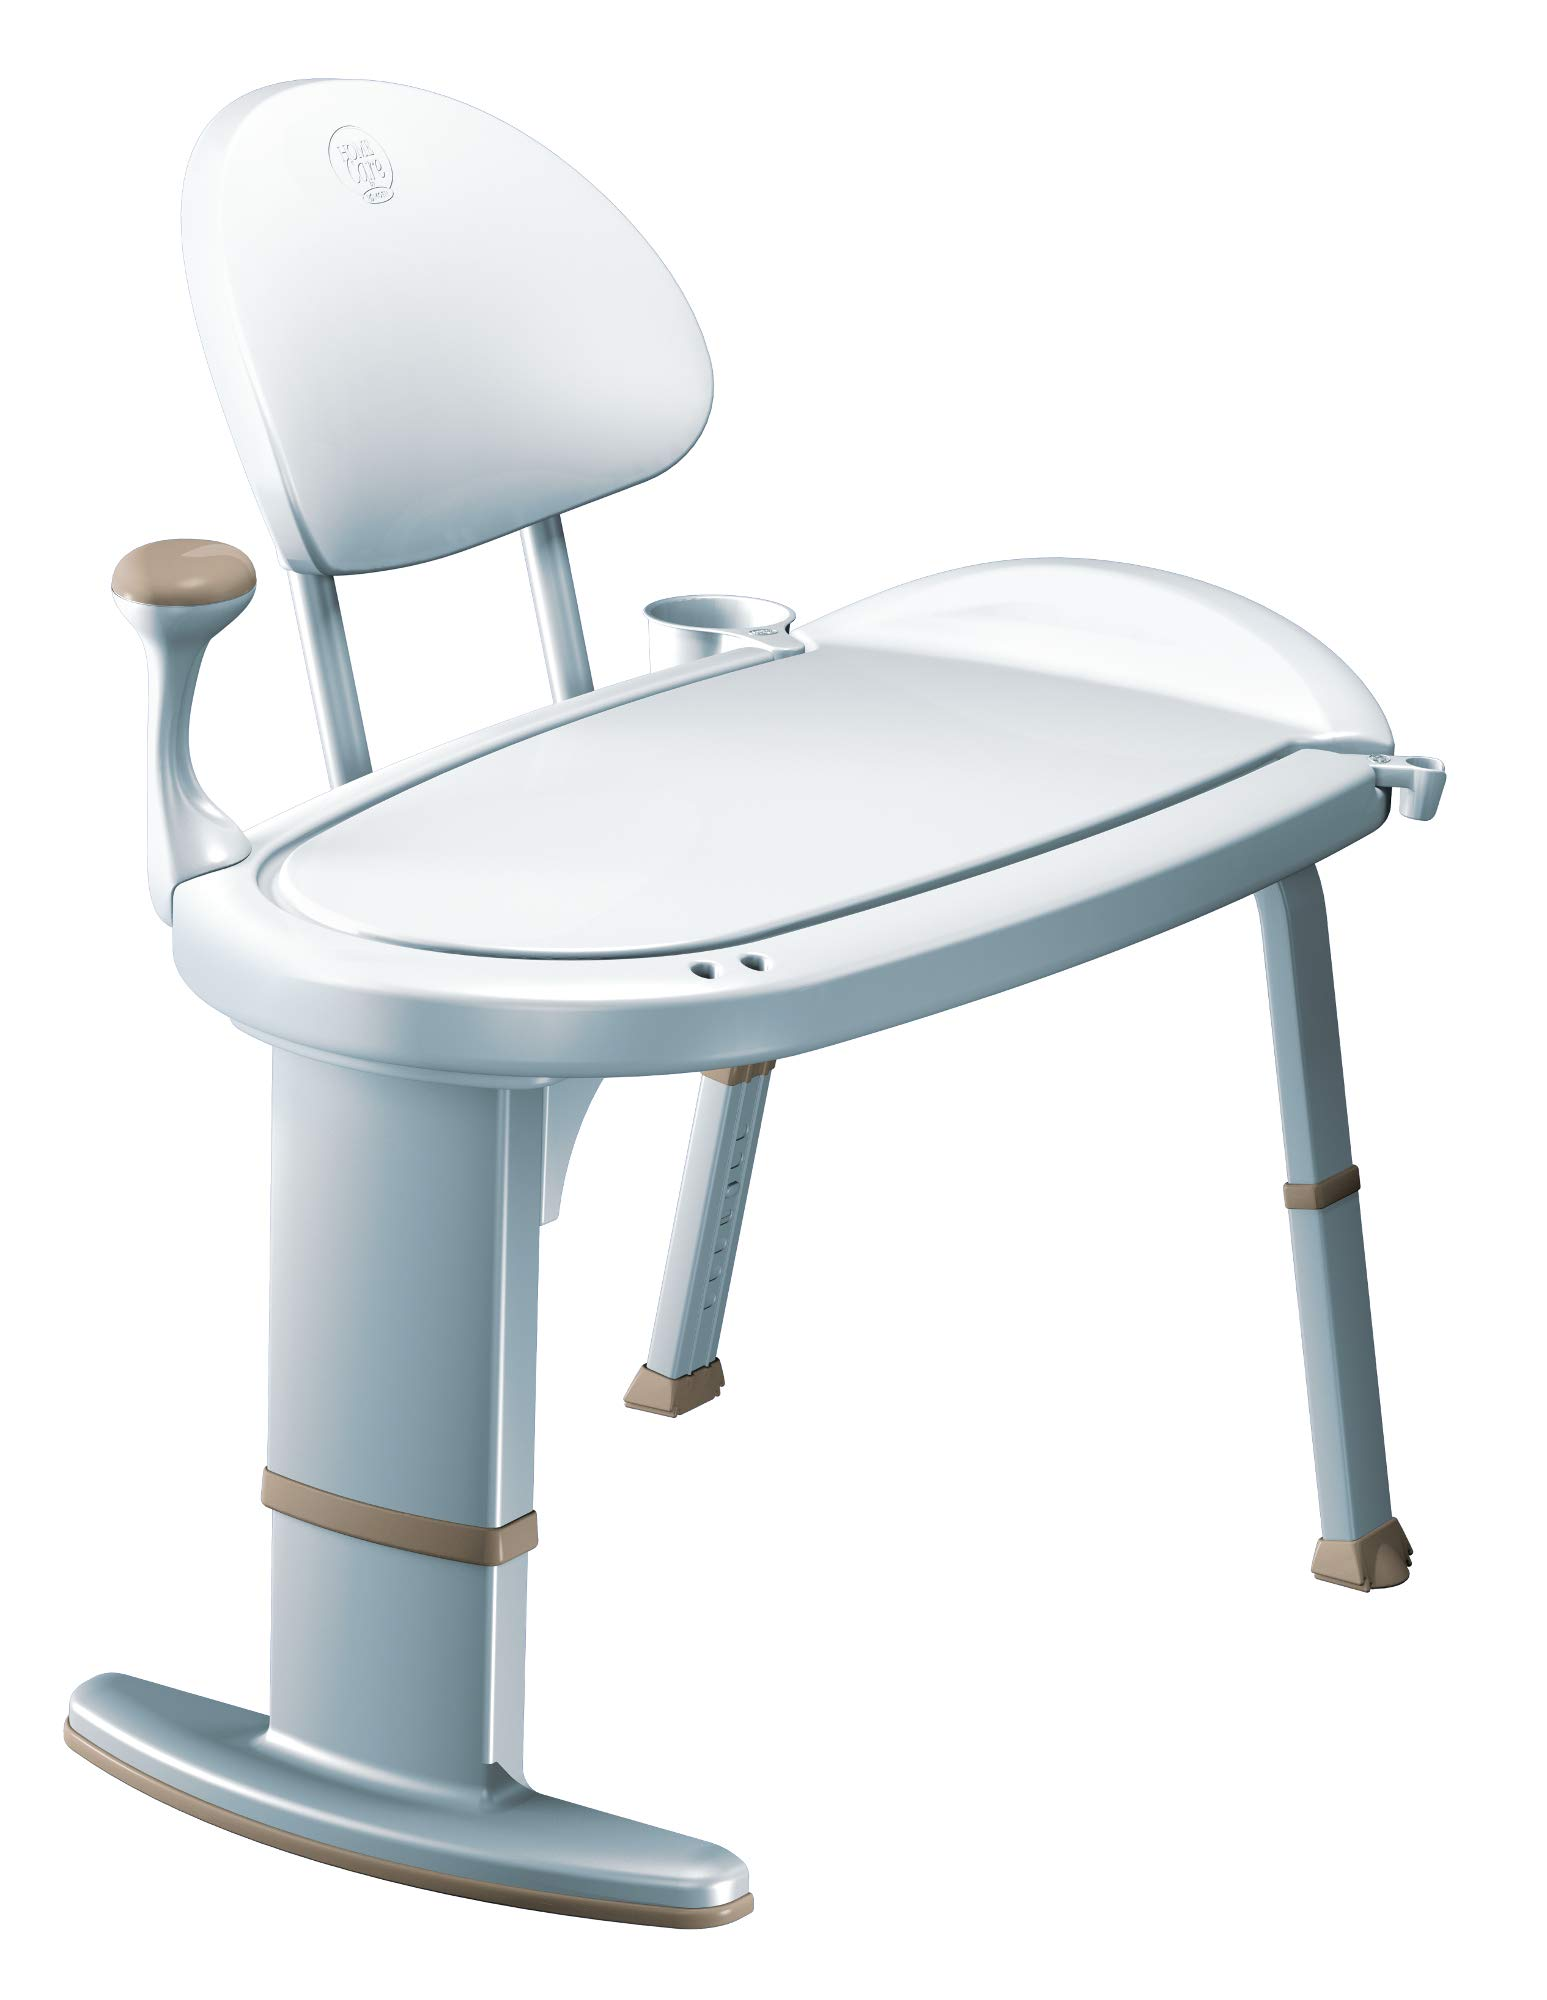 Moen DN7105 Home Care 33-Inch W x 18-Inch D Adjustable Height Non Slip Bath Safety Transfer Bench, Glacier White by Moen